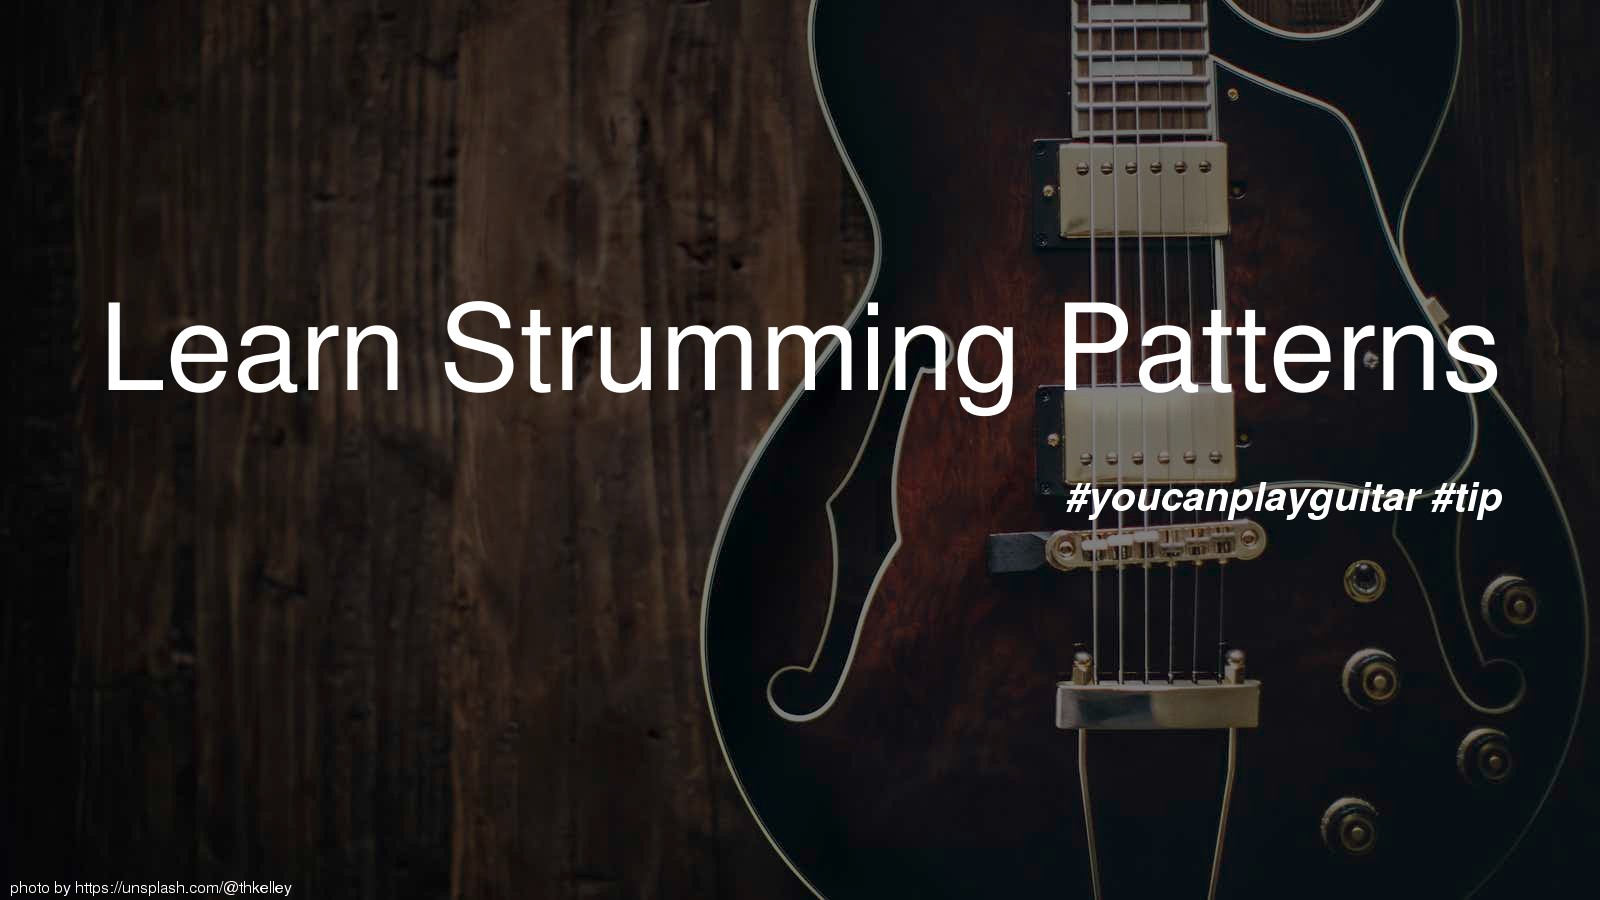 Learn Strumming Patterns